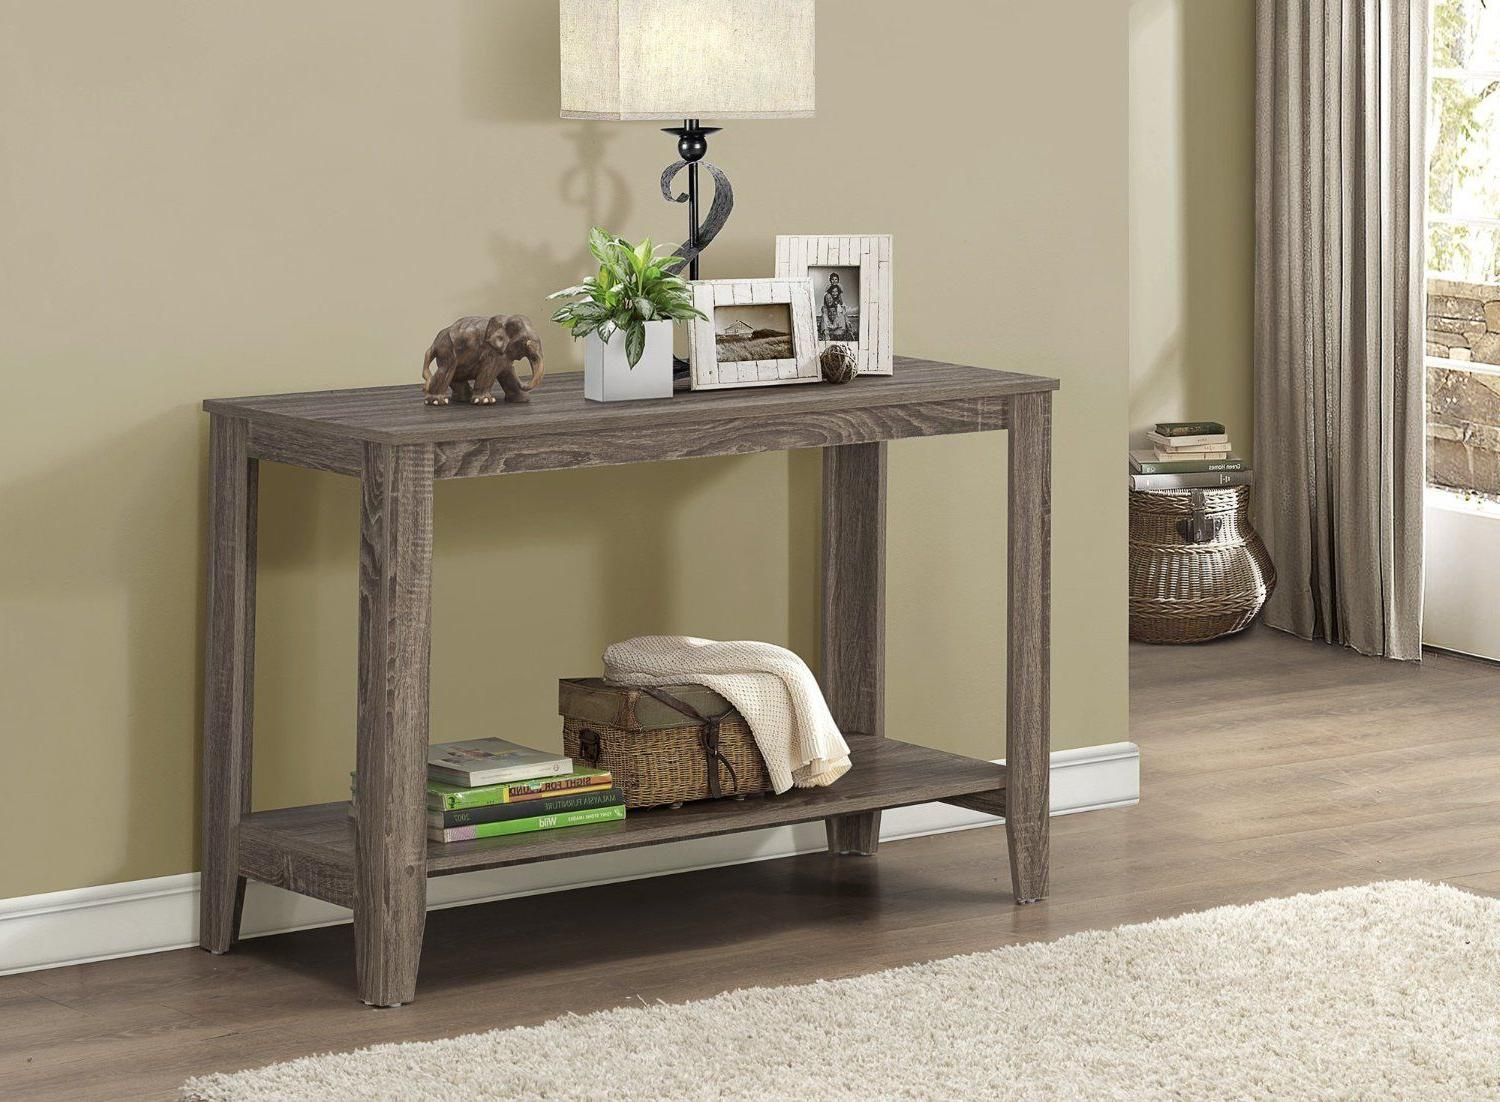 Rustic Console Table Sofa Wood Storage Accent Entryway Recla